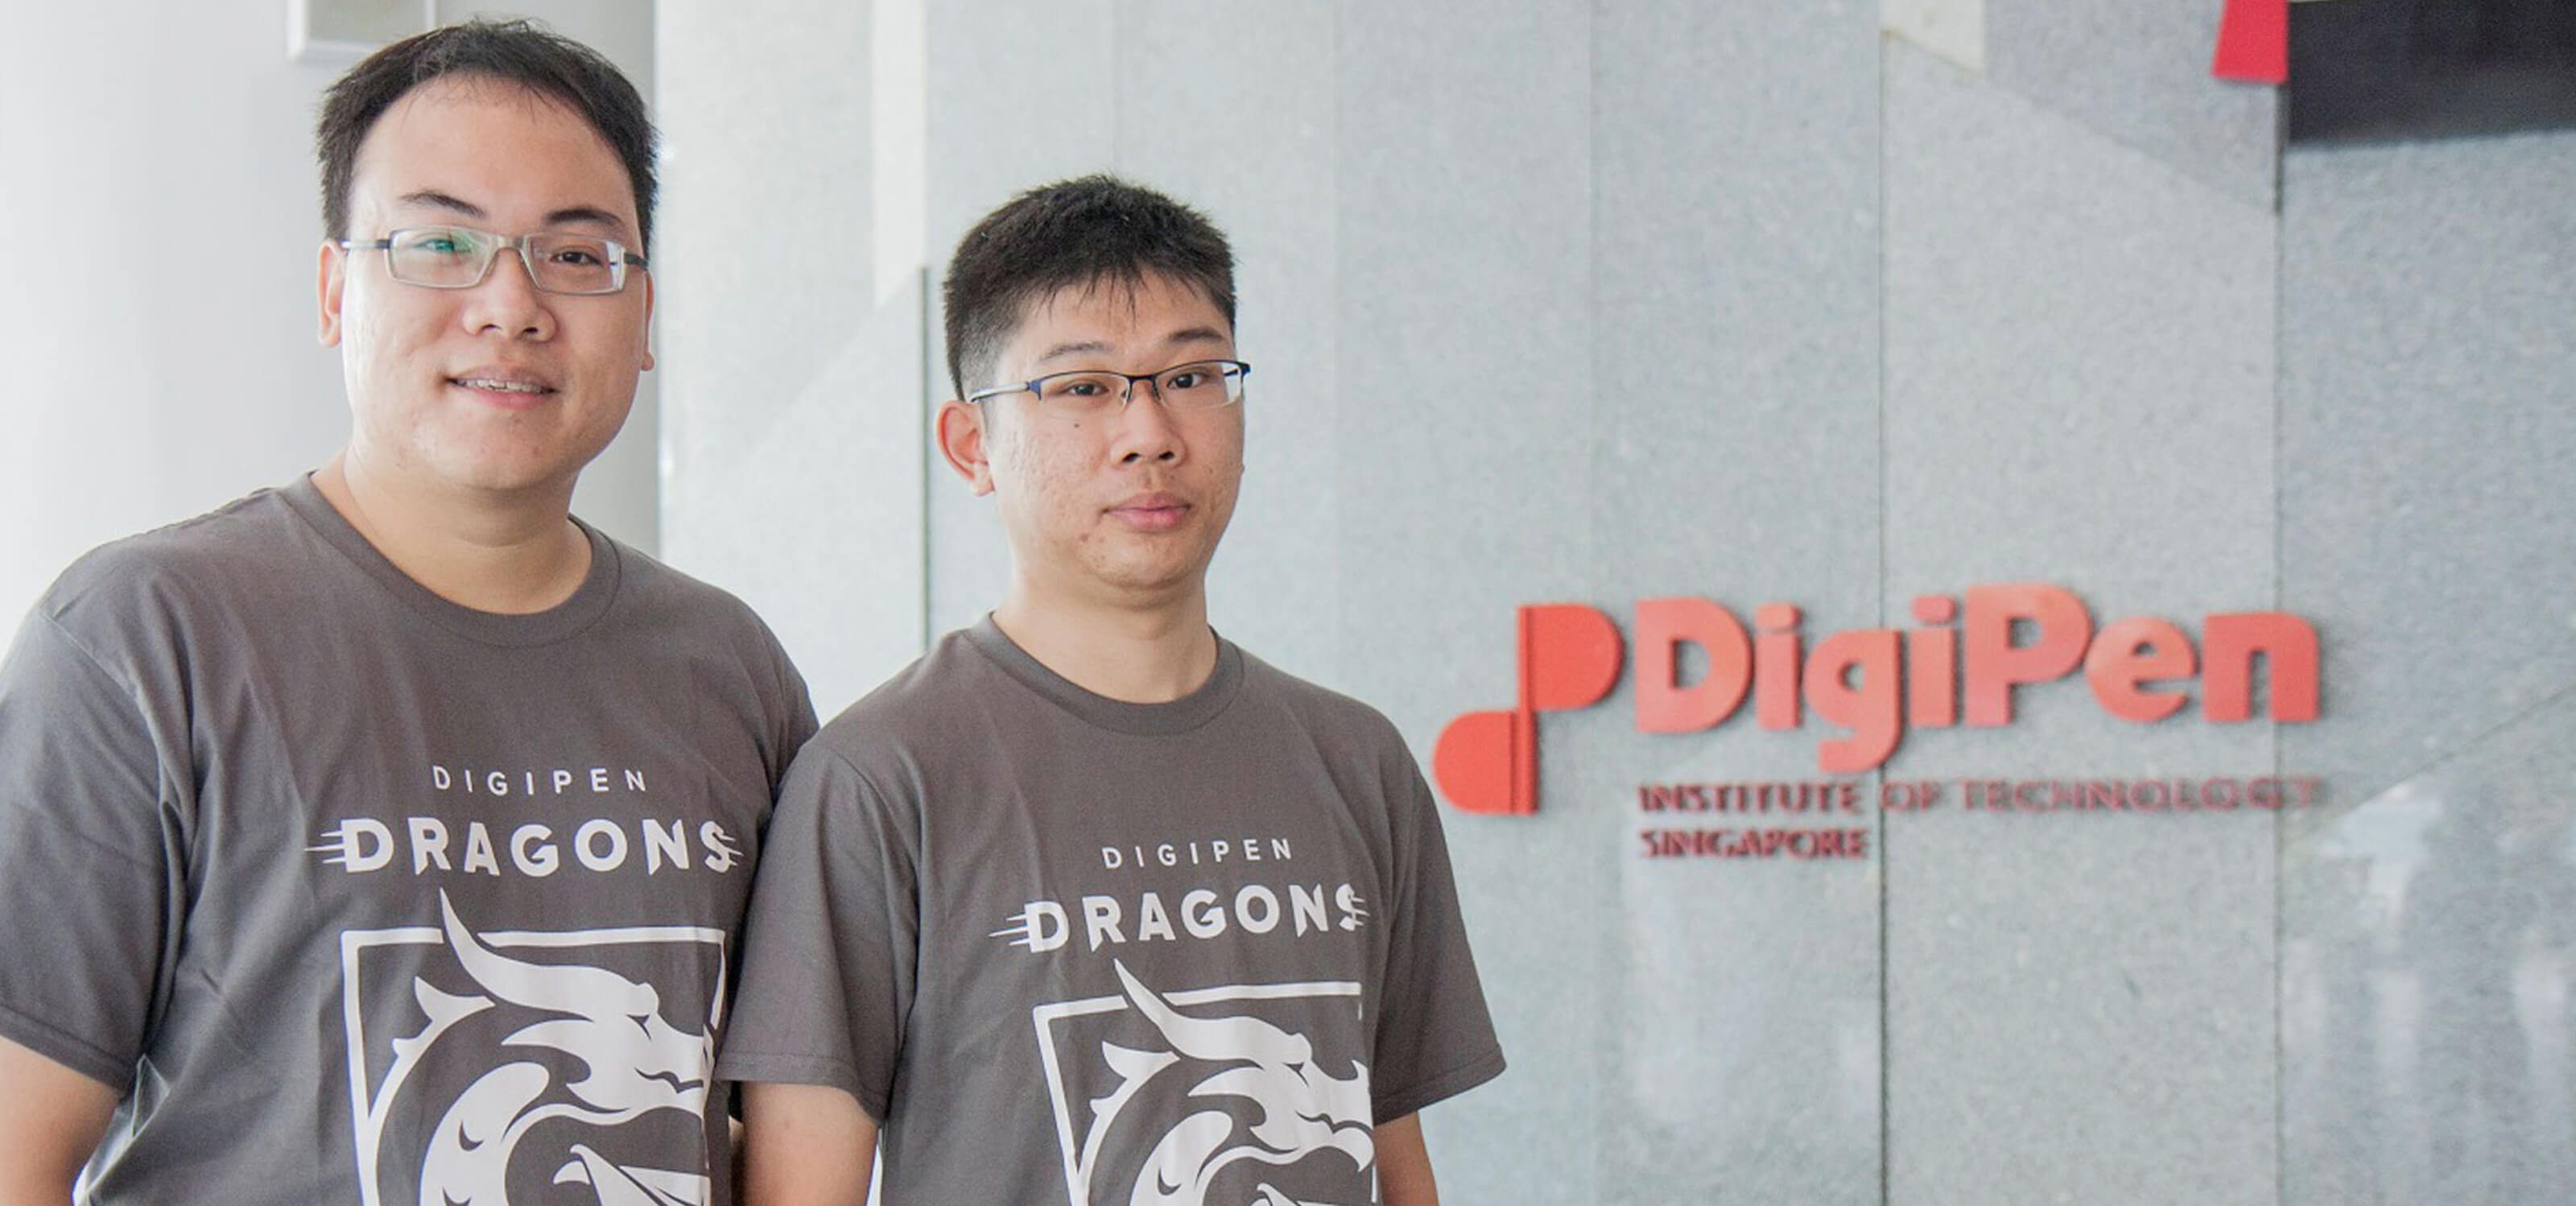 Graduates Tan Tien Wei Keith and Yap Teng Hong pose for a photo in gray DigiPen Dragons t-shirts next to the DigiPen building